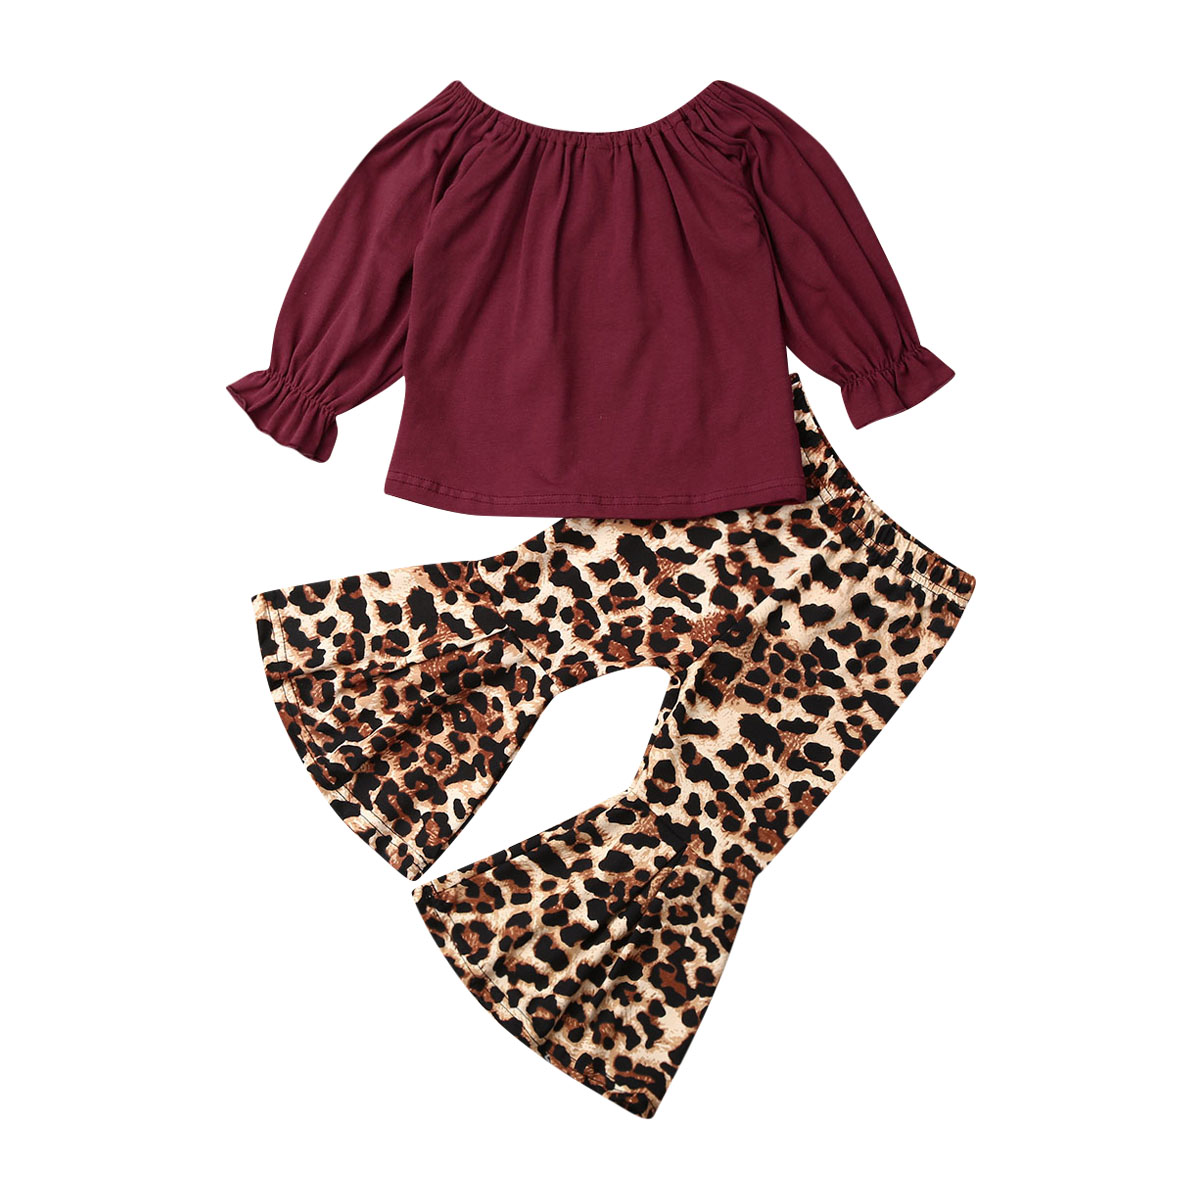 US Toddler Baby Girl Cotton Tops T-shirt Floral Pants Bell Bottom Outfit Clothes